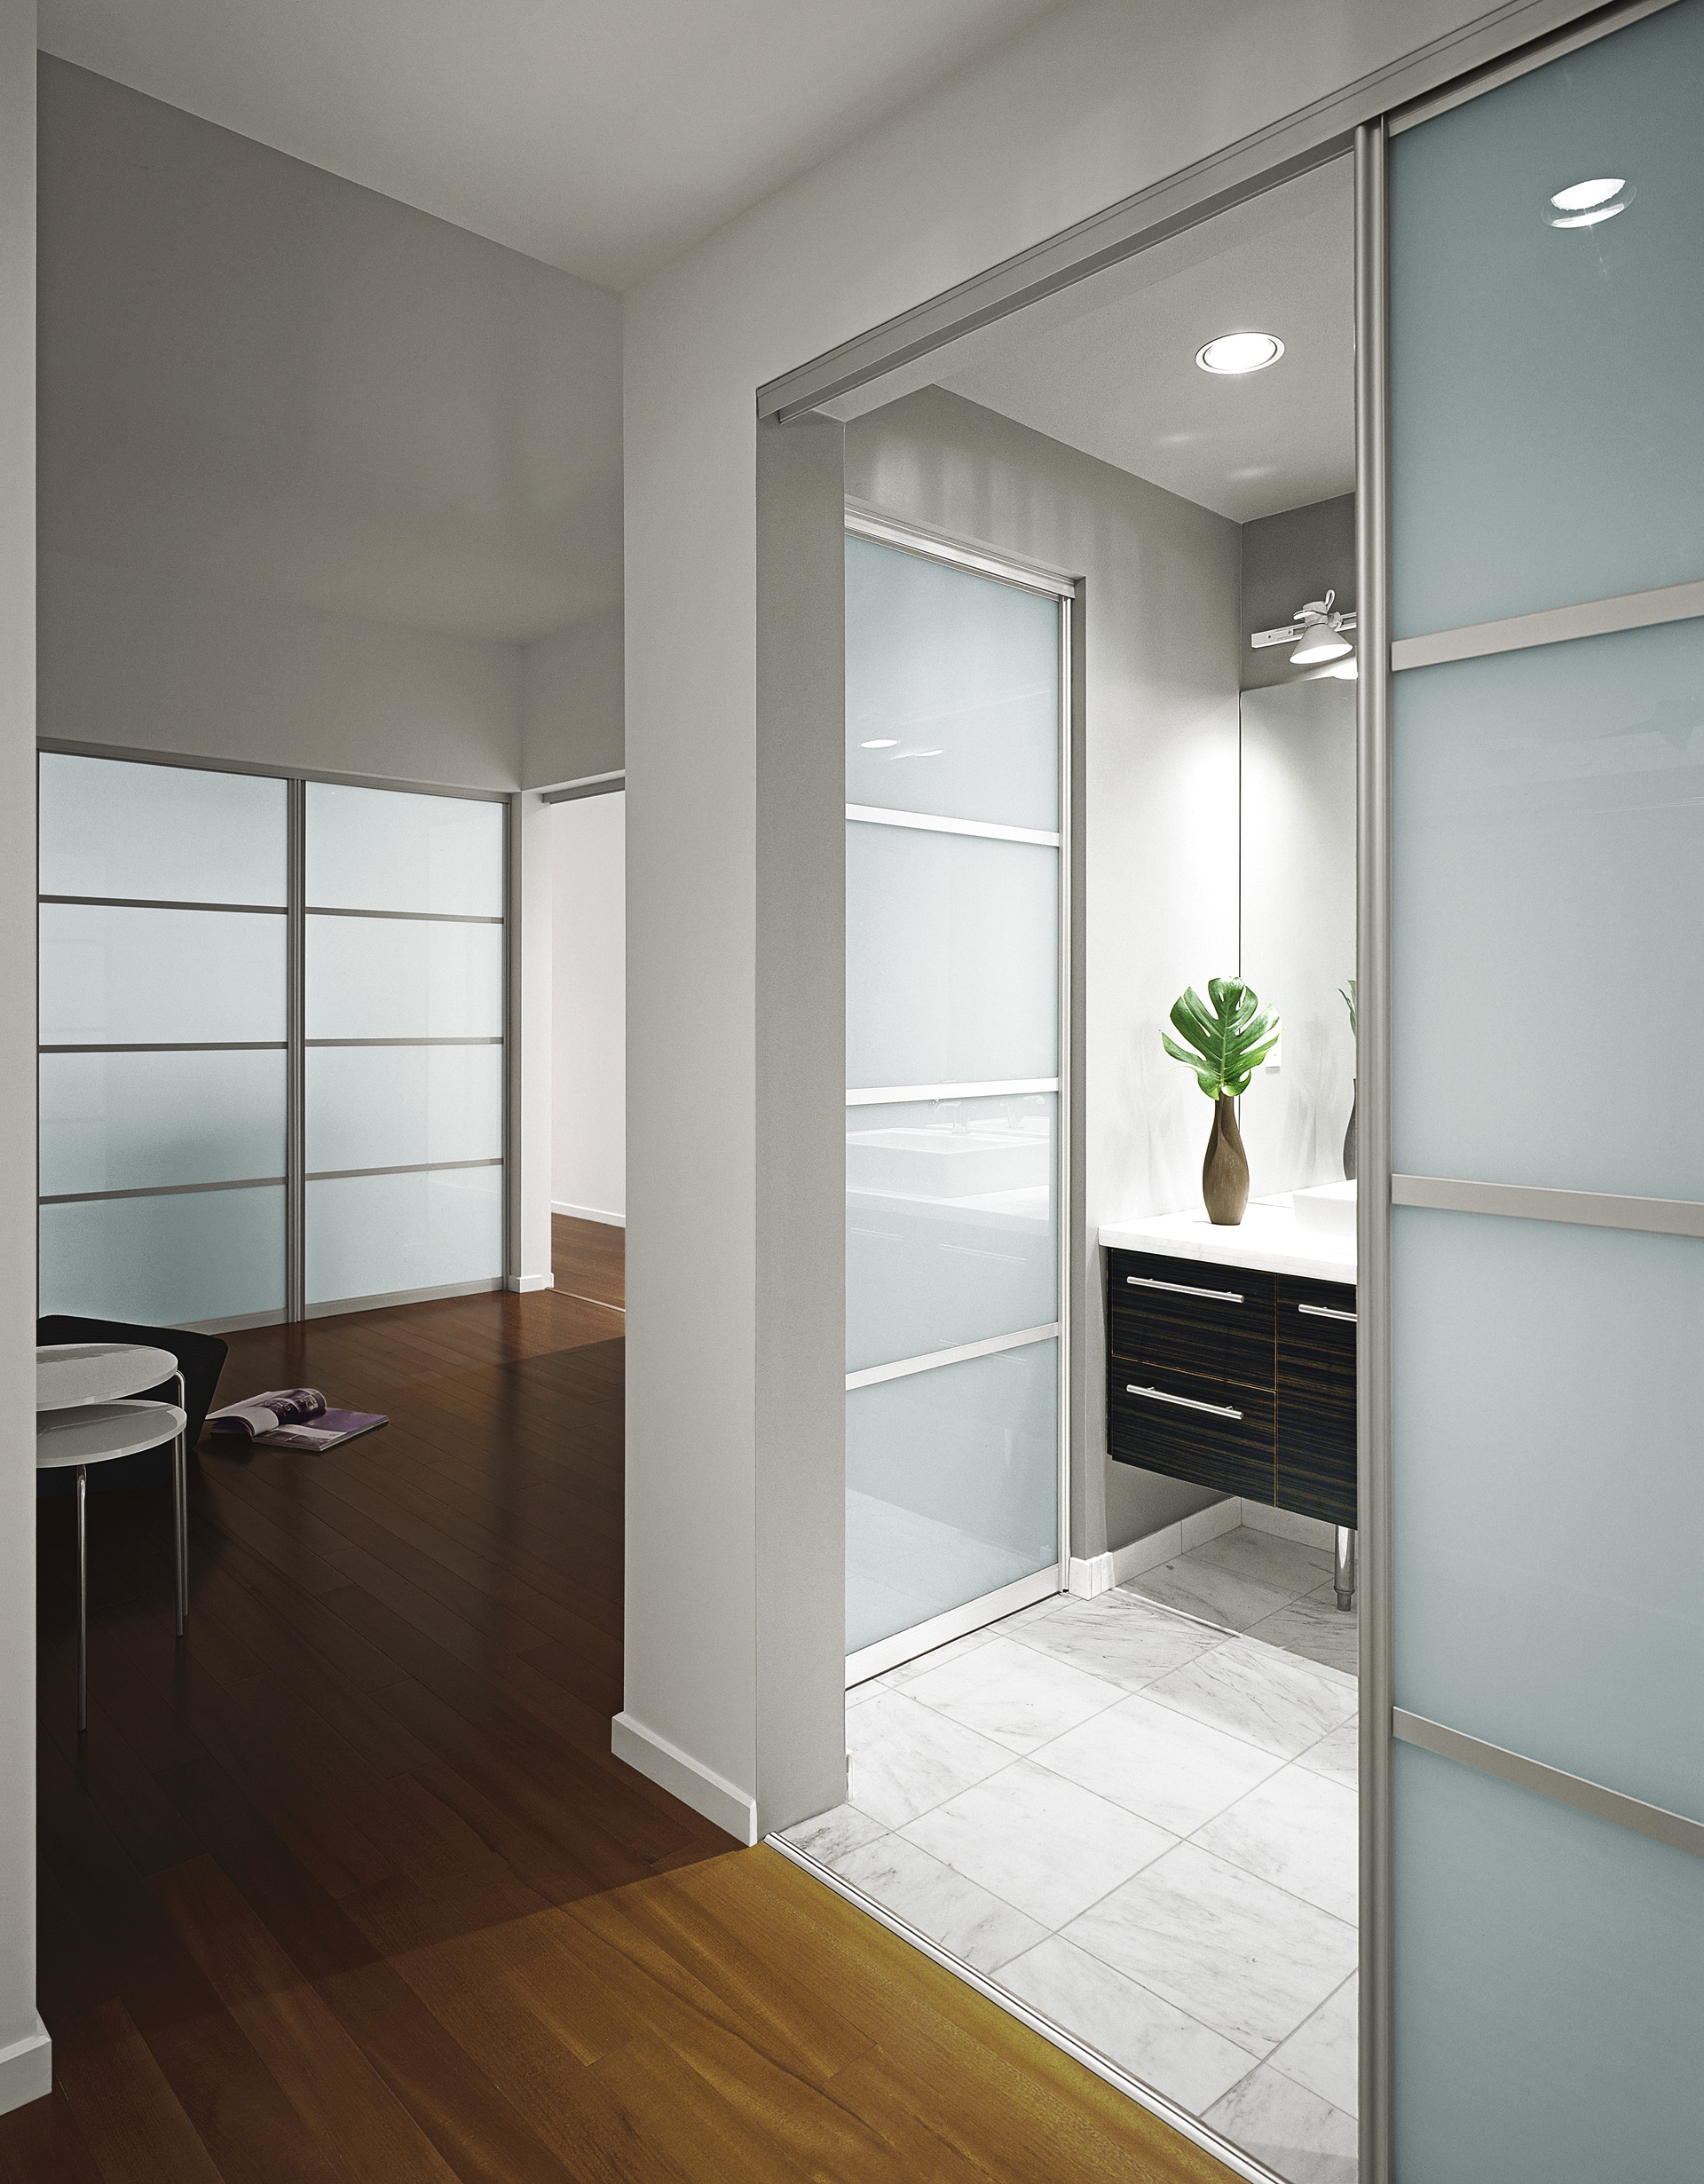 Bathroom Doors Dividersinterior attractive sliding room dividers for interior decor idea